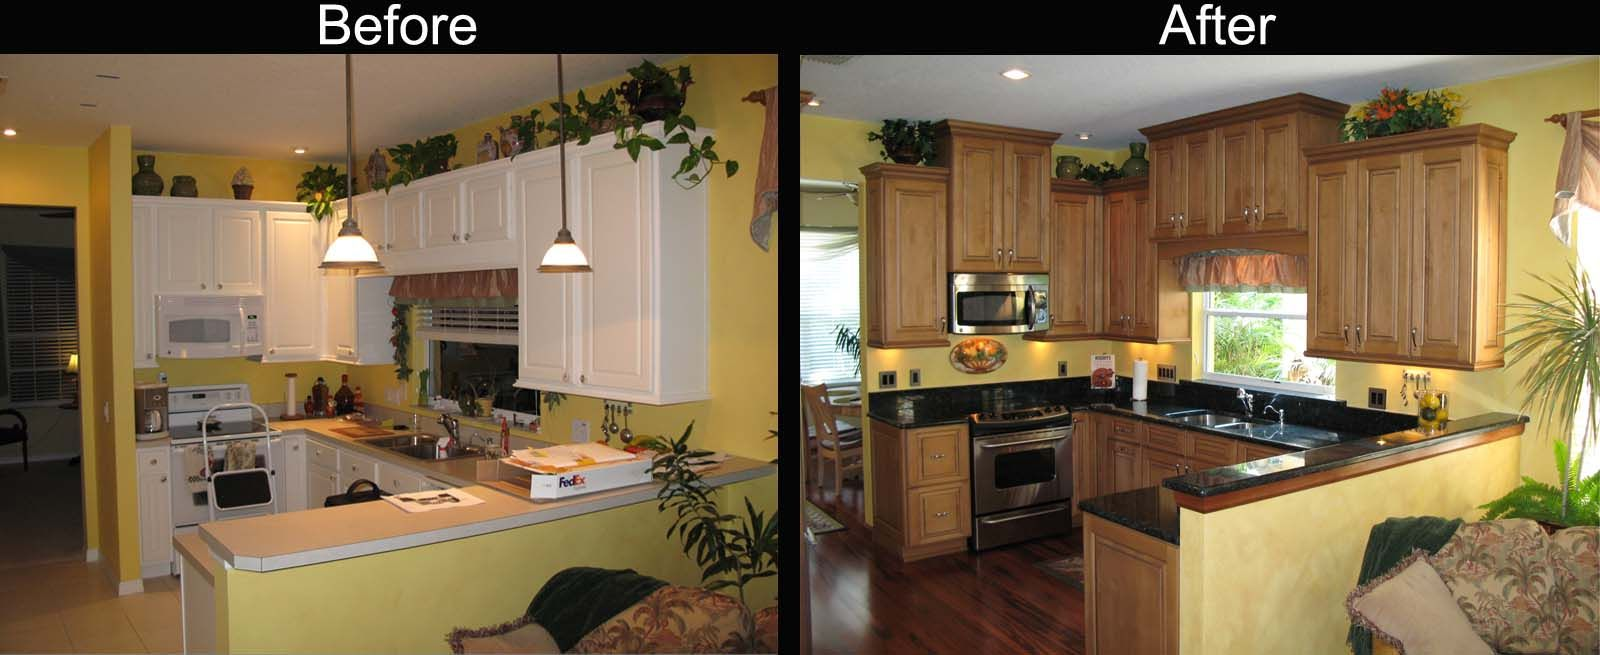 Home Renovation Ideas Before And After Brilliant Painted Cabinets Before And After Ideas For Your Kitchen Design Ideas